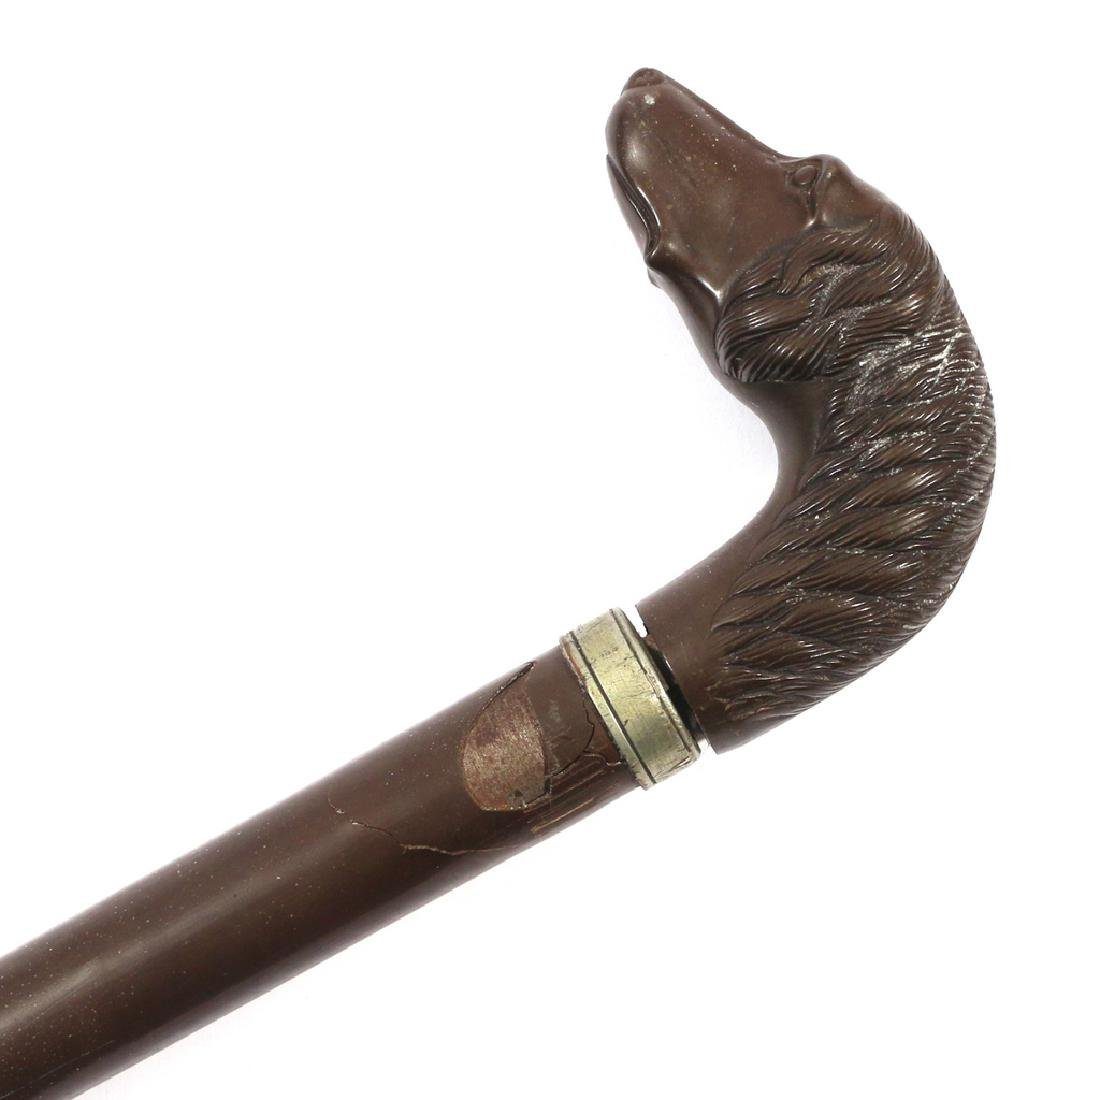 CARVED SINGLE SHOT PISTOL CANE - 2